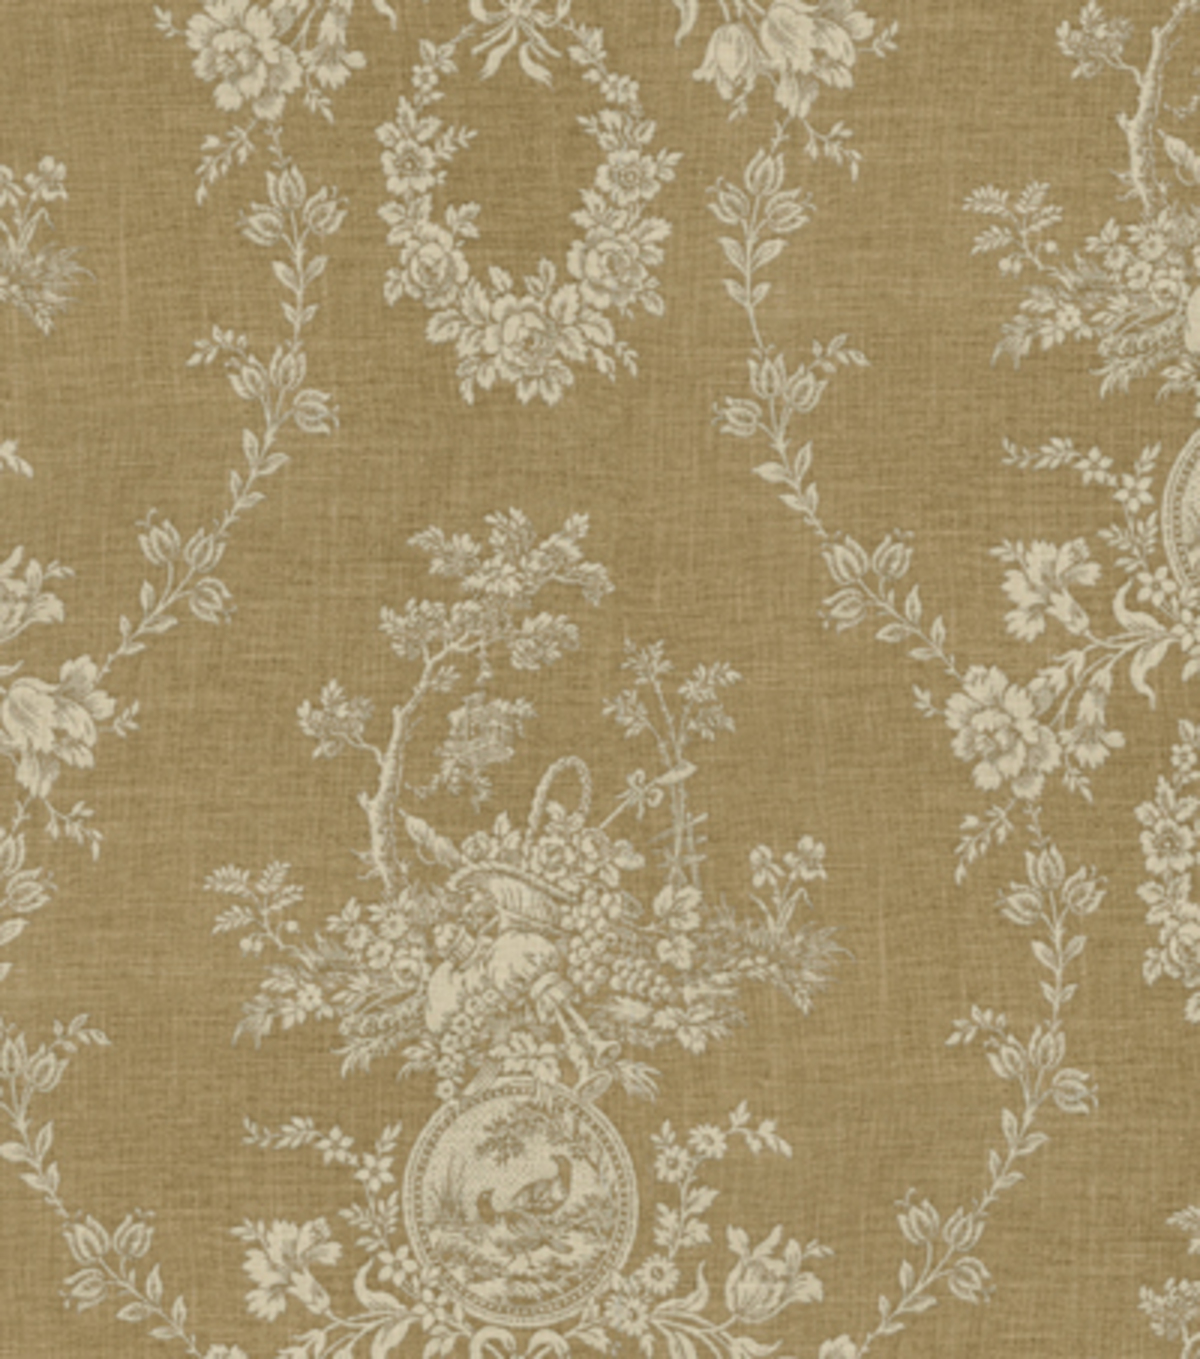 Home Decor 8\u0022x8\u0022 Fabric Swatch-Waverly Country House /Linen